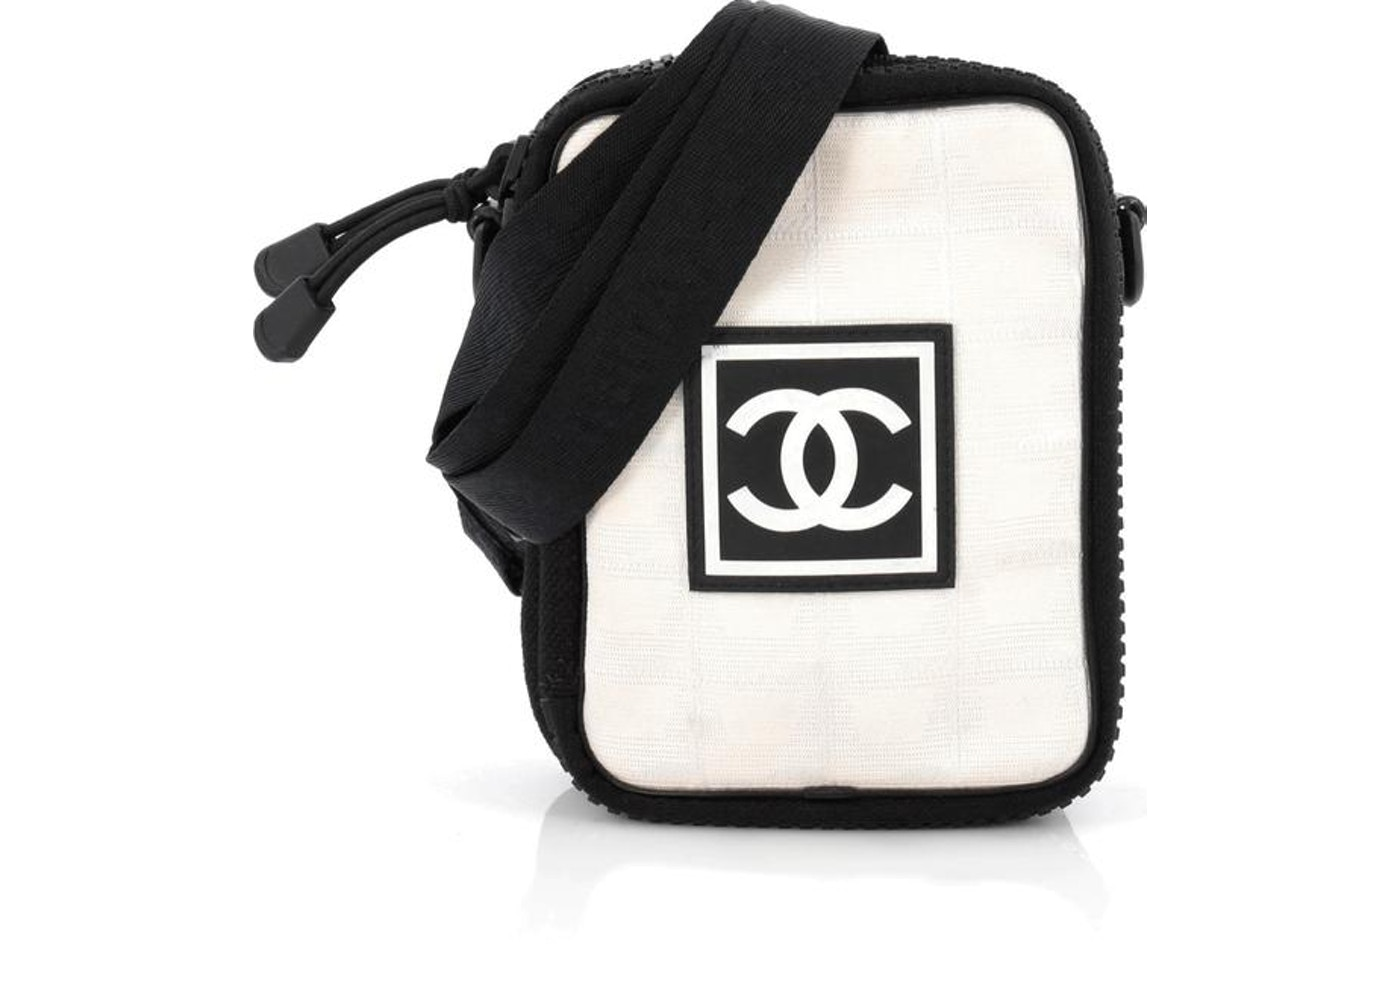 d2e048b35a1c43 Chanel Sport Line Crossbody Bag Mini Black/Off White. Mini Black/Off White